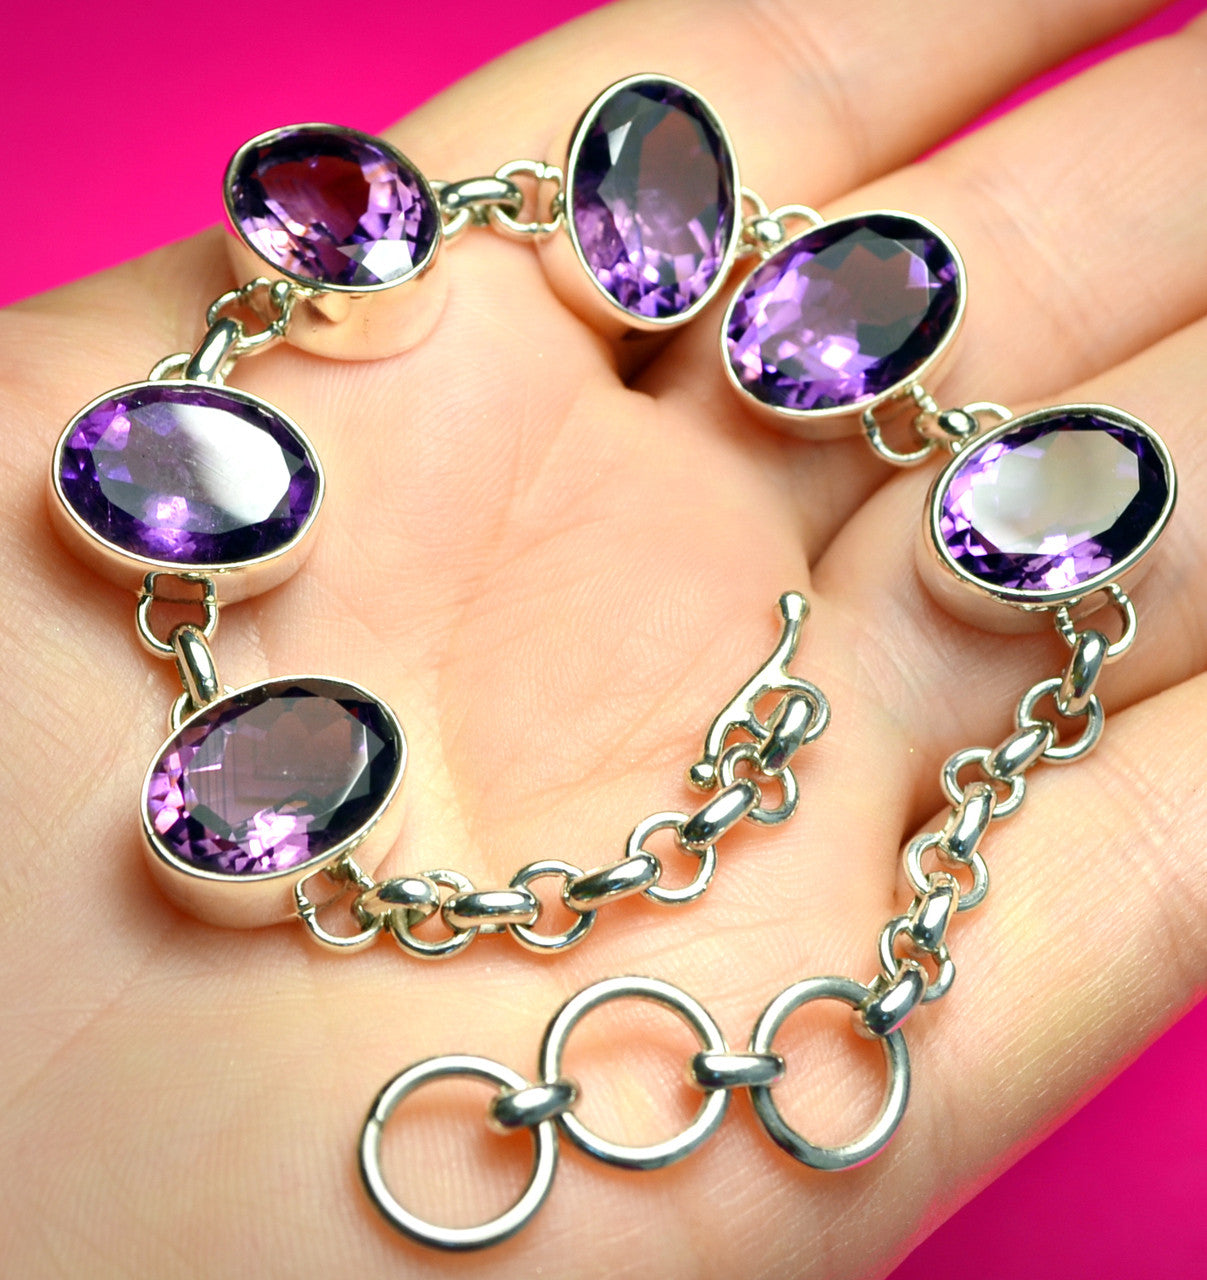 Natural Amethyst Sterling Silver adjustablre bracelet from Bali